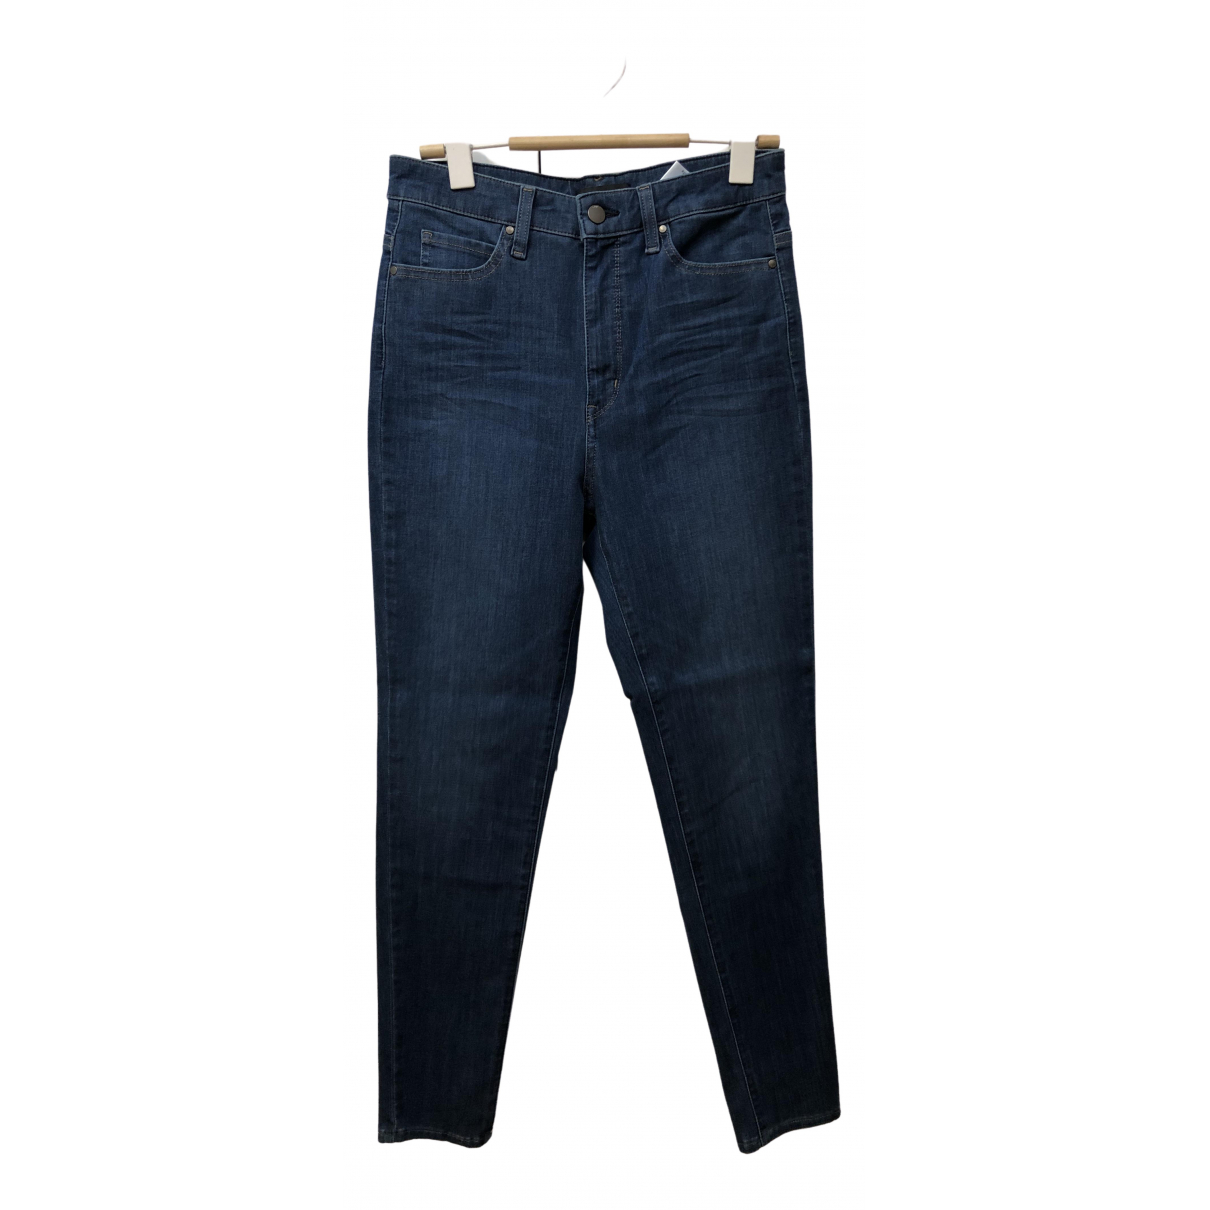 Uniqlo \N Blue Cotton - elasthane Jeans for Women 27 US